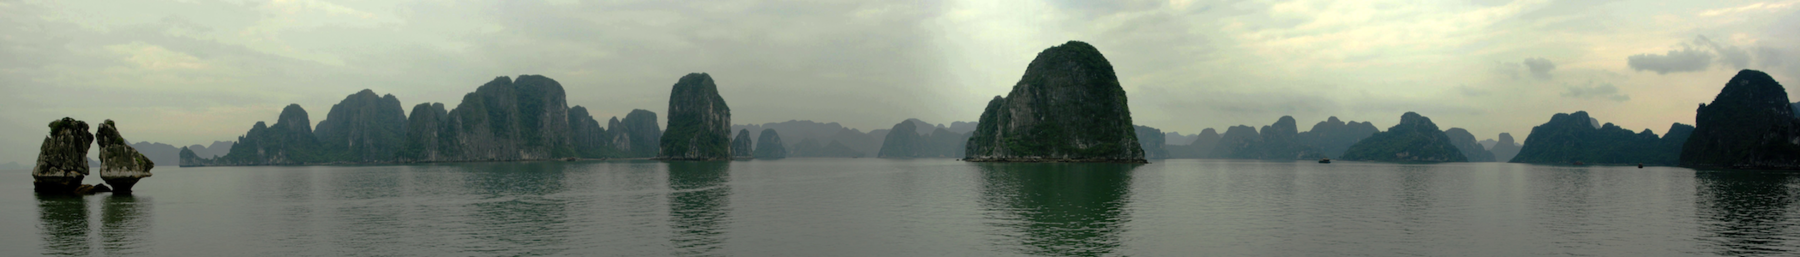 Panorama van Halong Bay in Vietnam